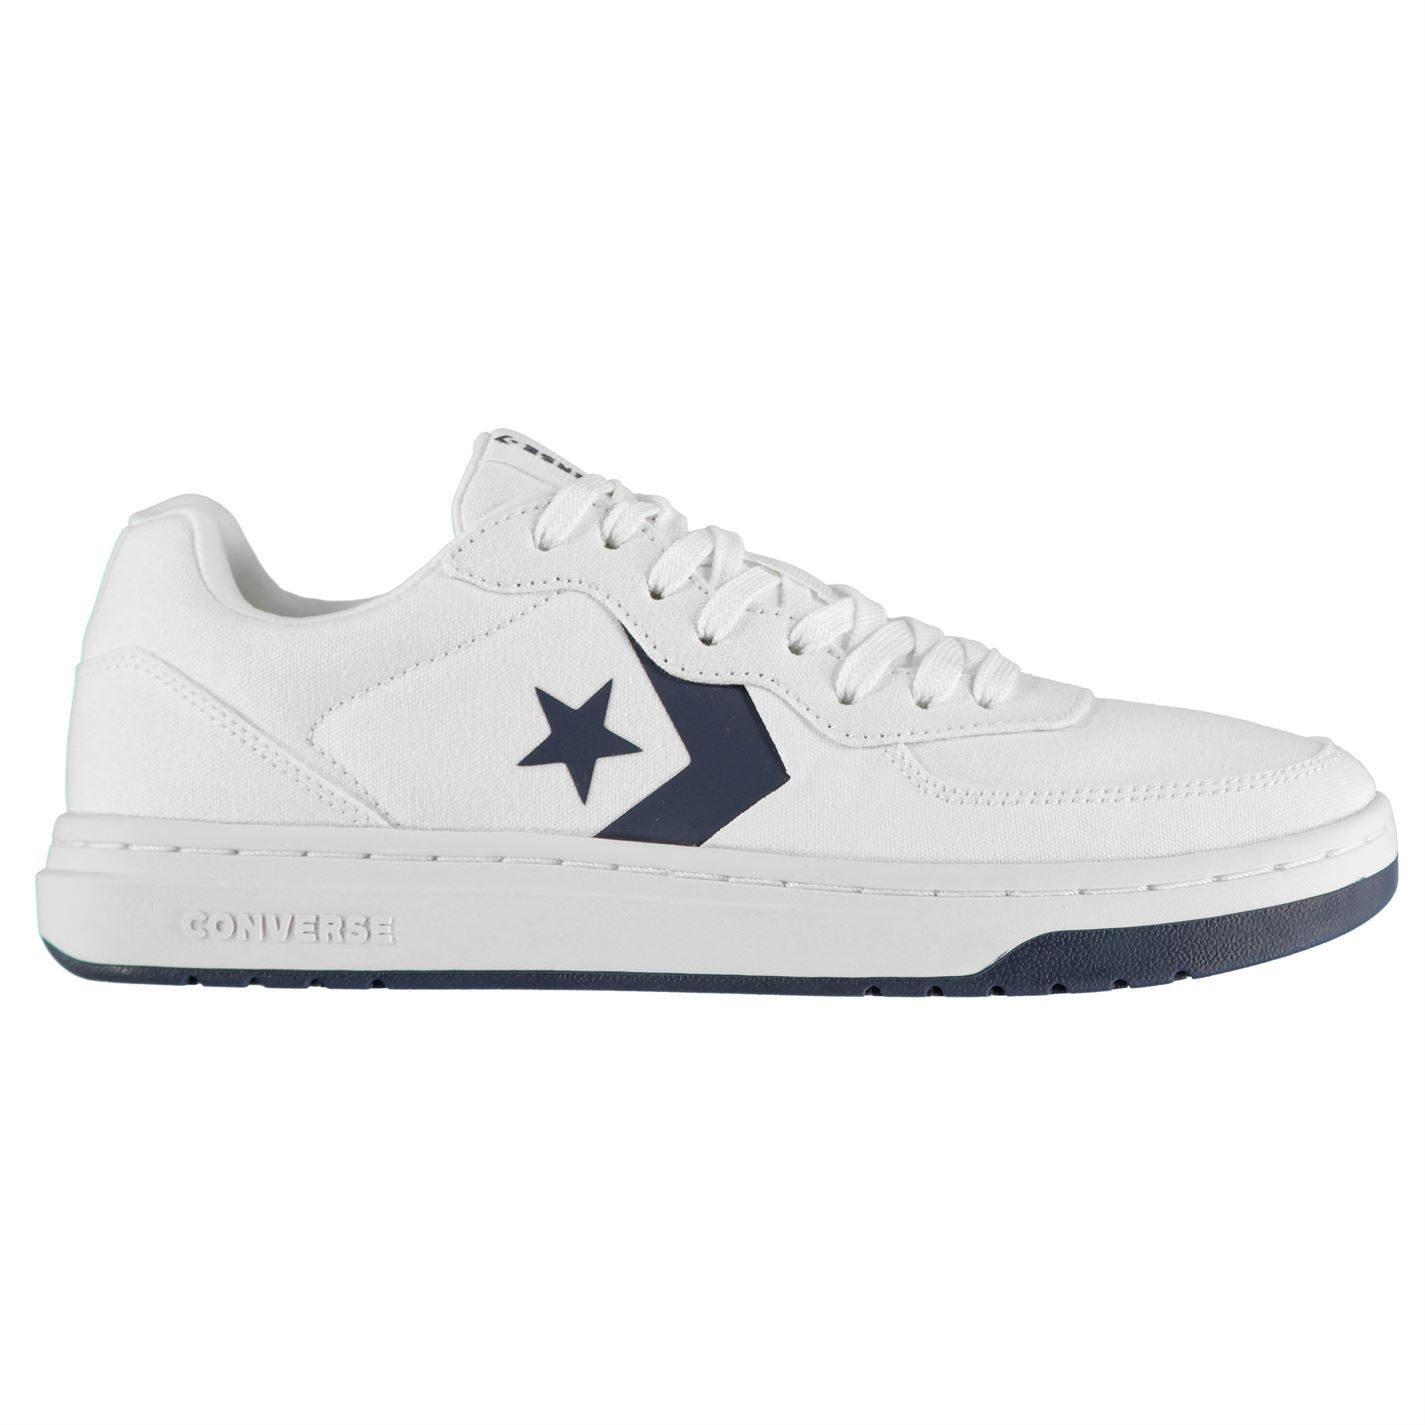 converse casual shoes Online Shopping